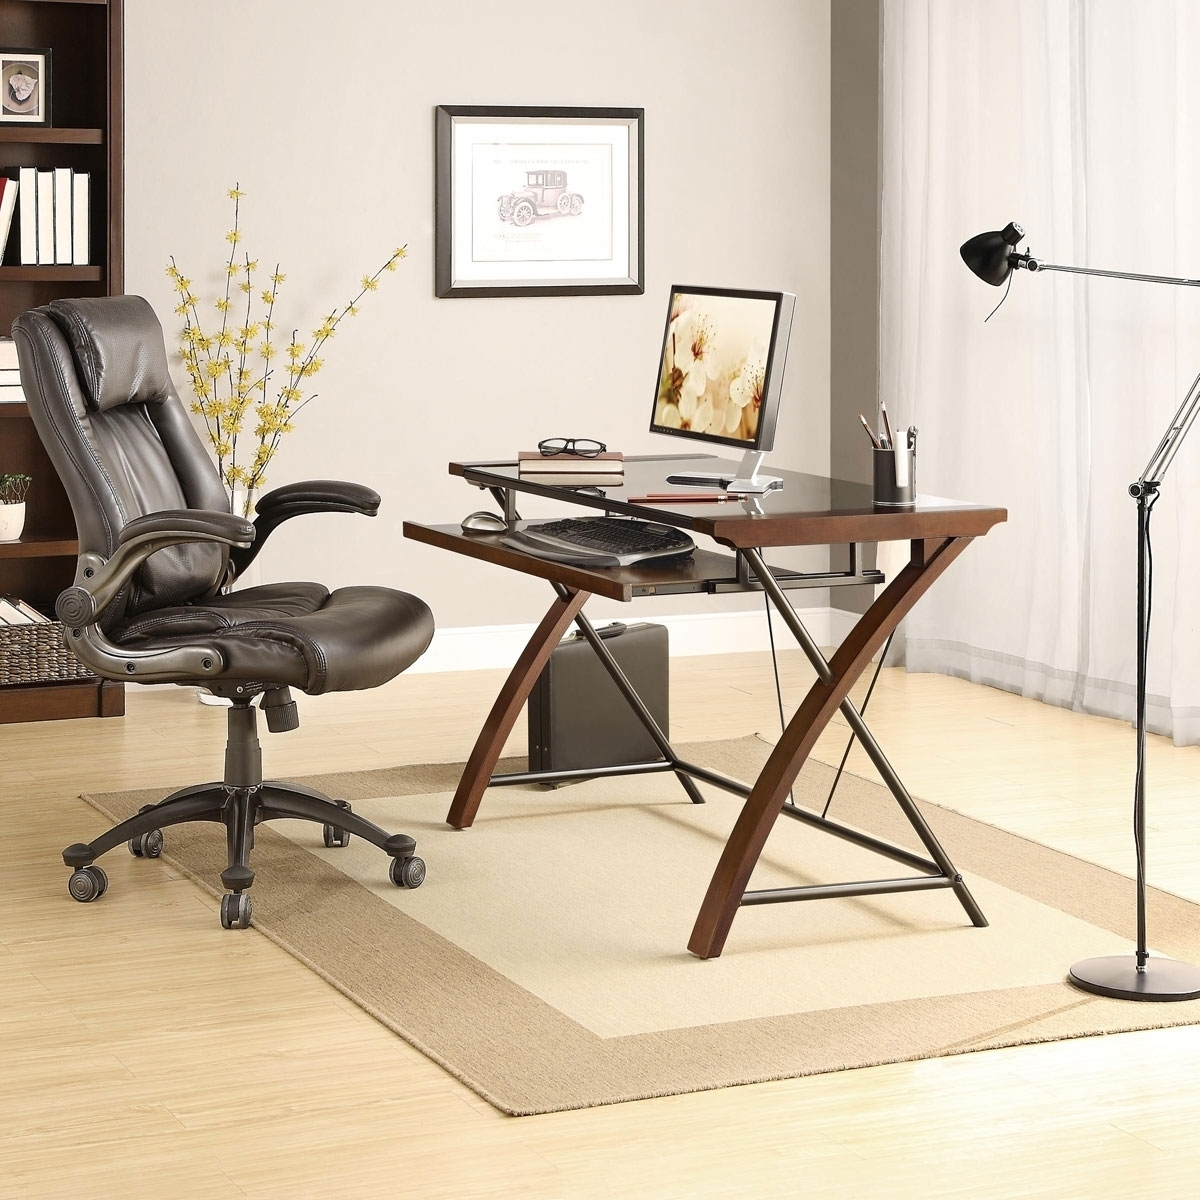 Costco Office Chair Ideas — New Home Design Within Newest Computer Desks At Costco (View 6 of 20)